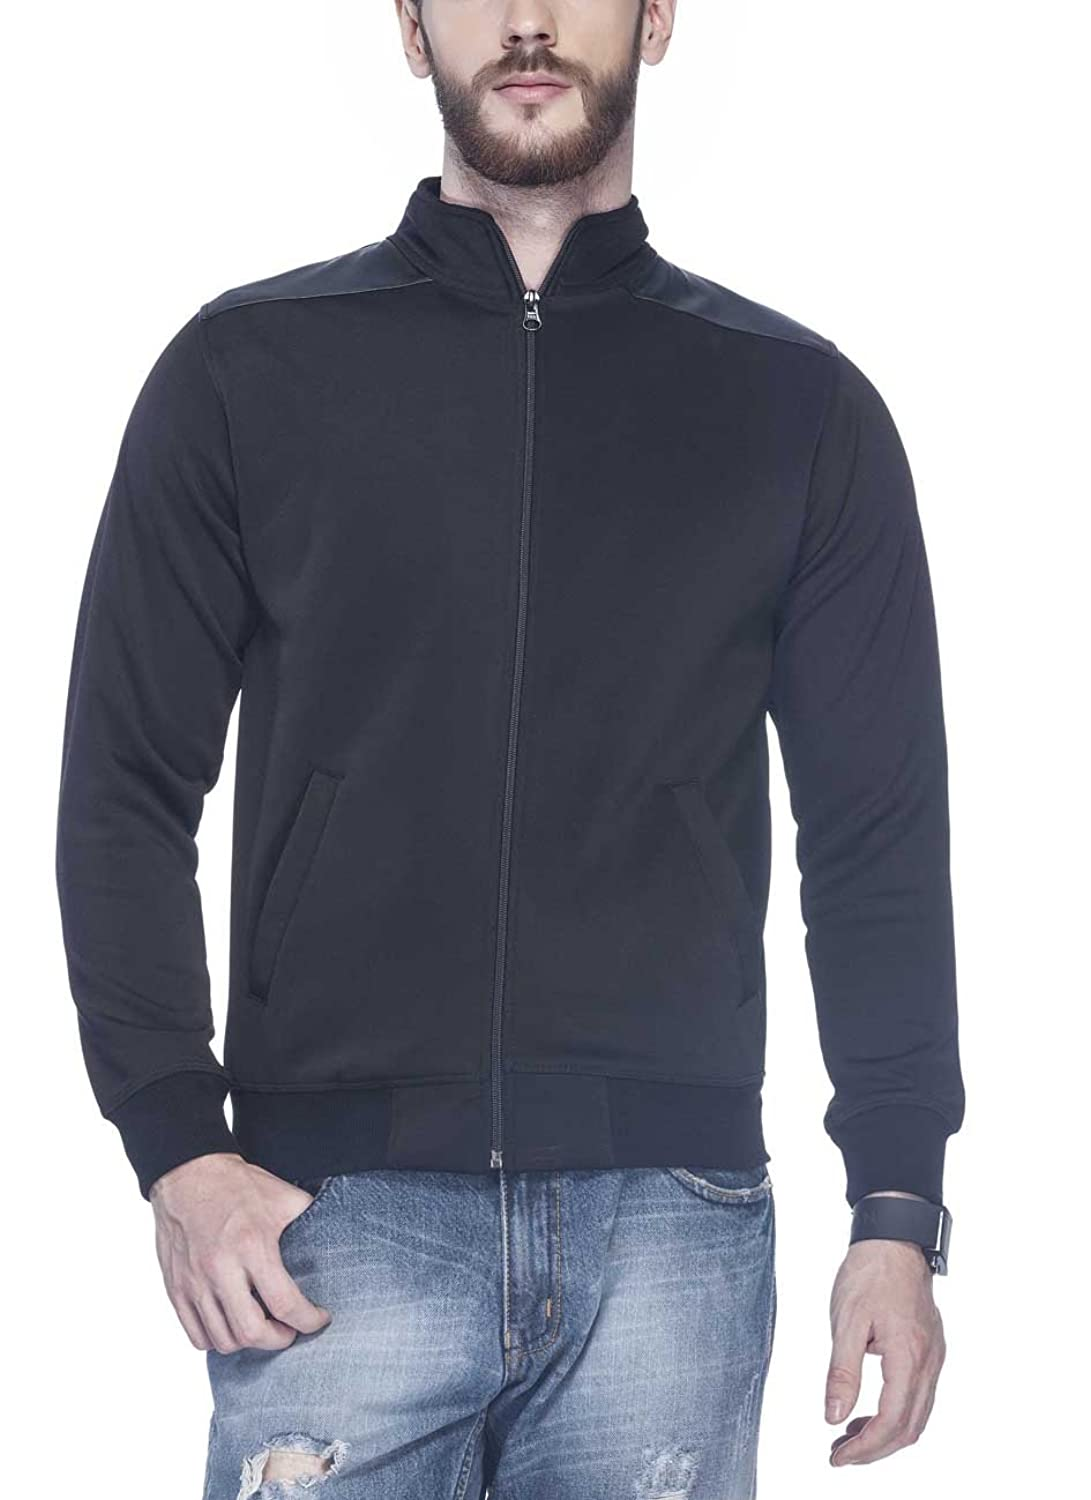 Tinted Men's Polyester Jacket